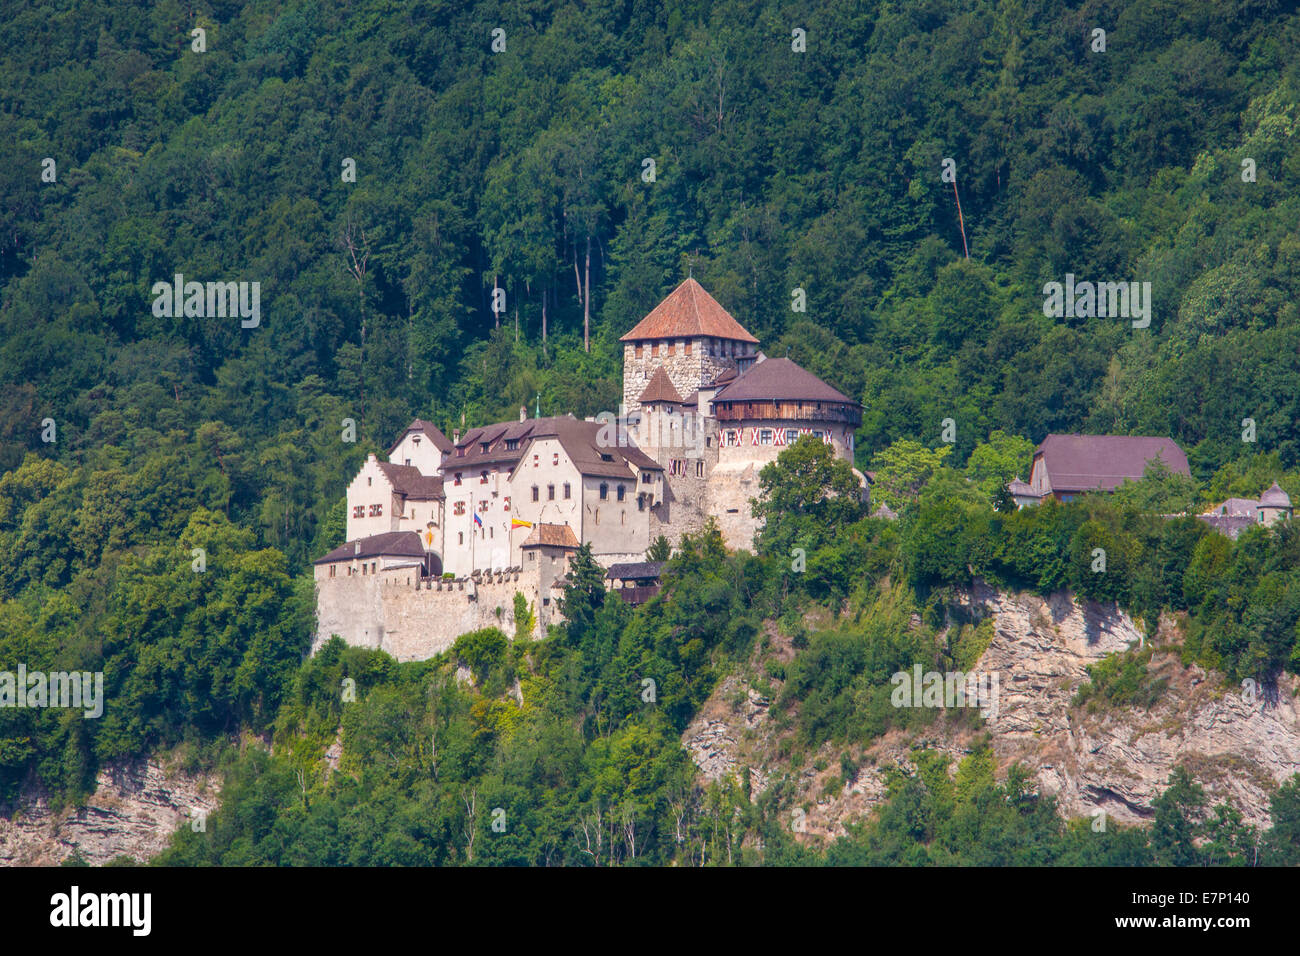 Liechtenstein, Europe, Vaduz, architecture, castle, city, famous, landscape, spring, touristic, travel - Stock Image